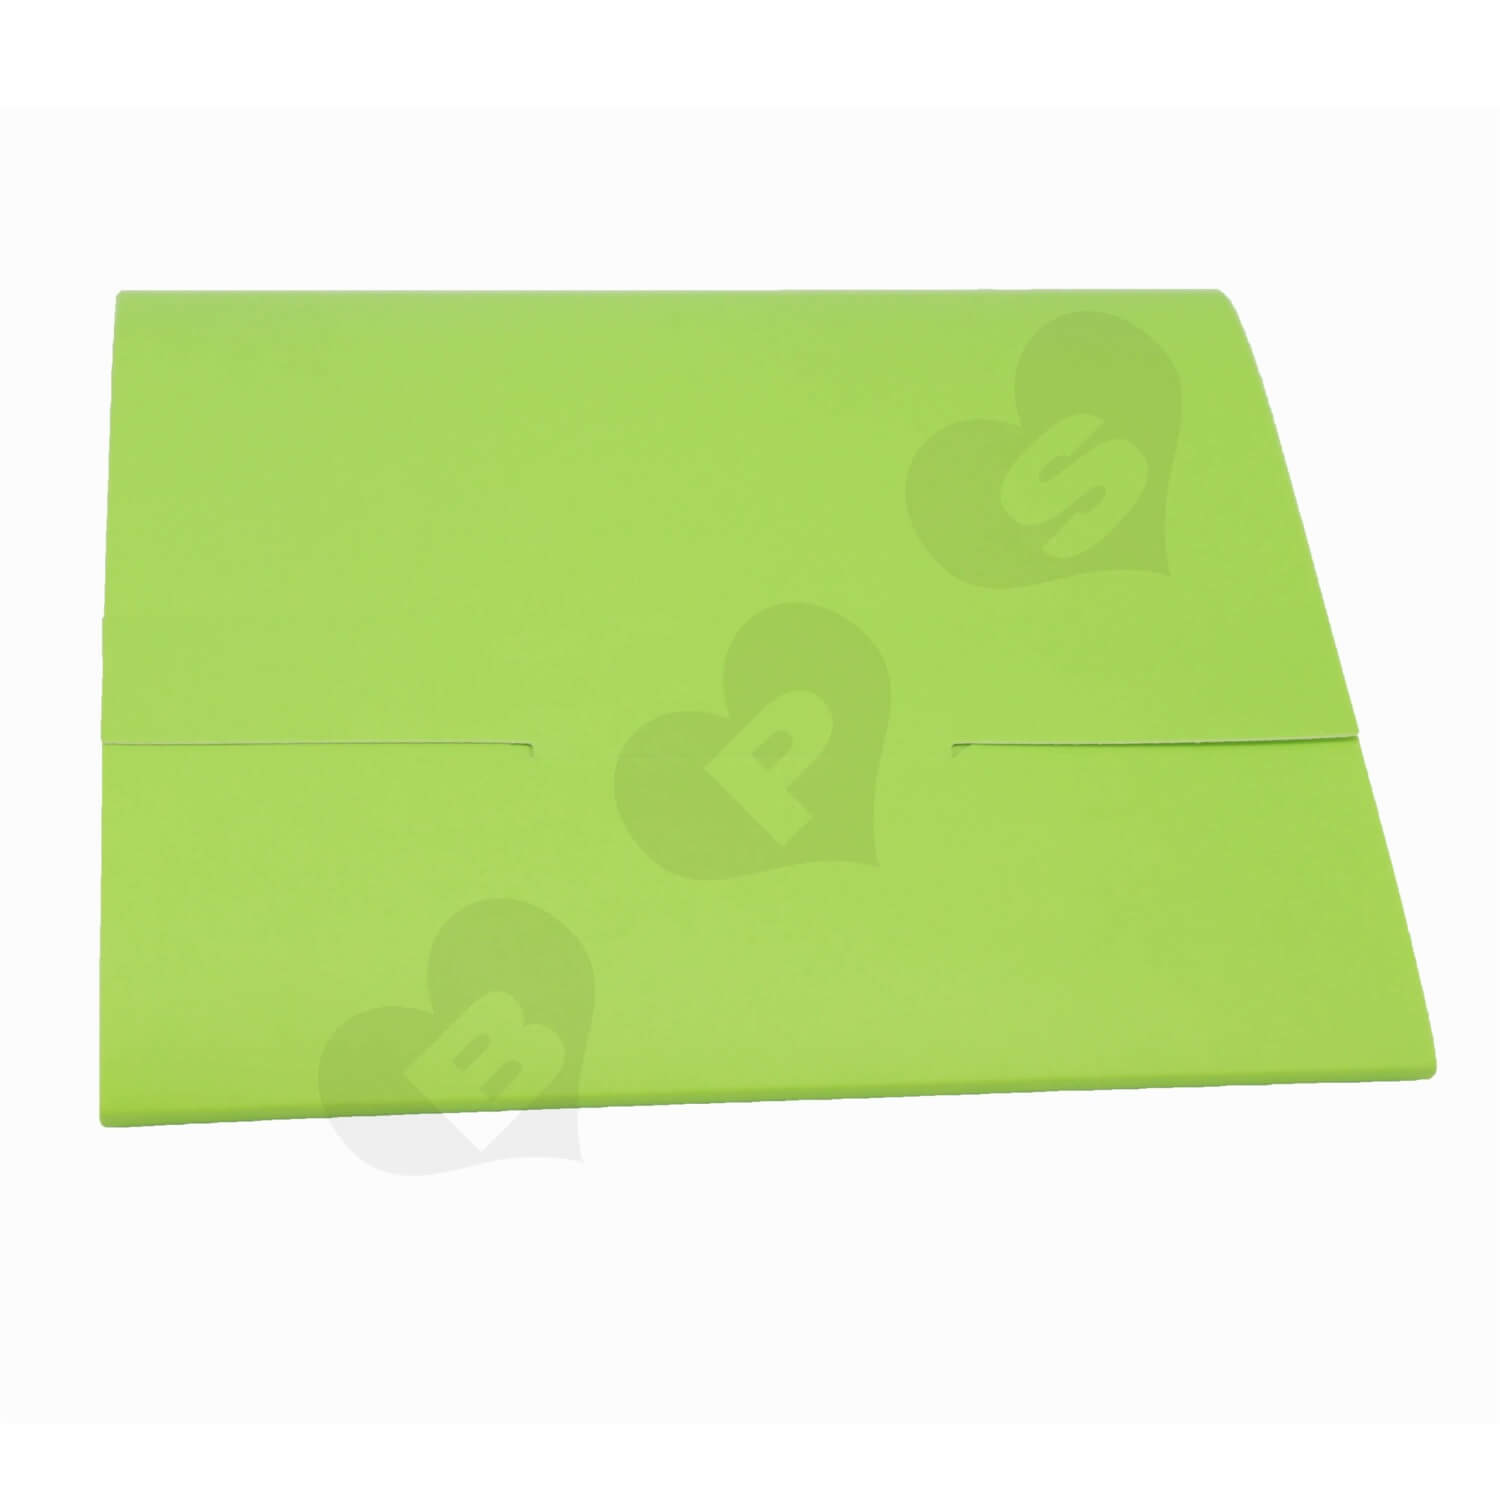 Green Paperboard Folder for Instructions side view three